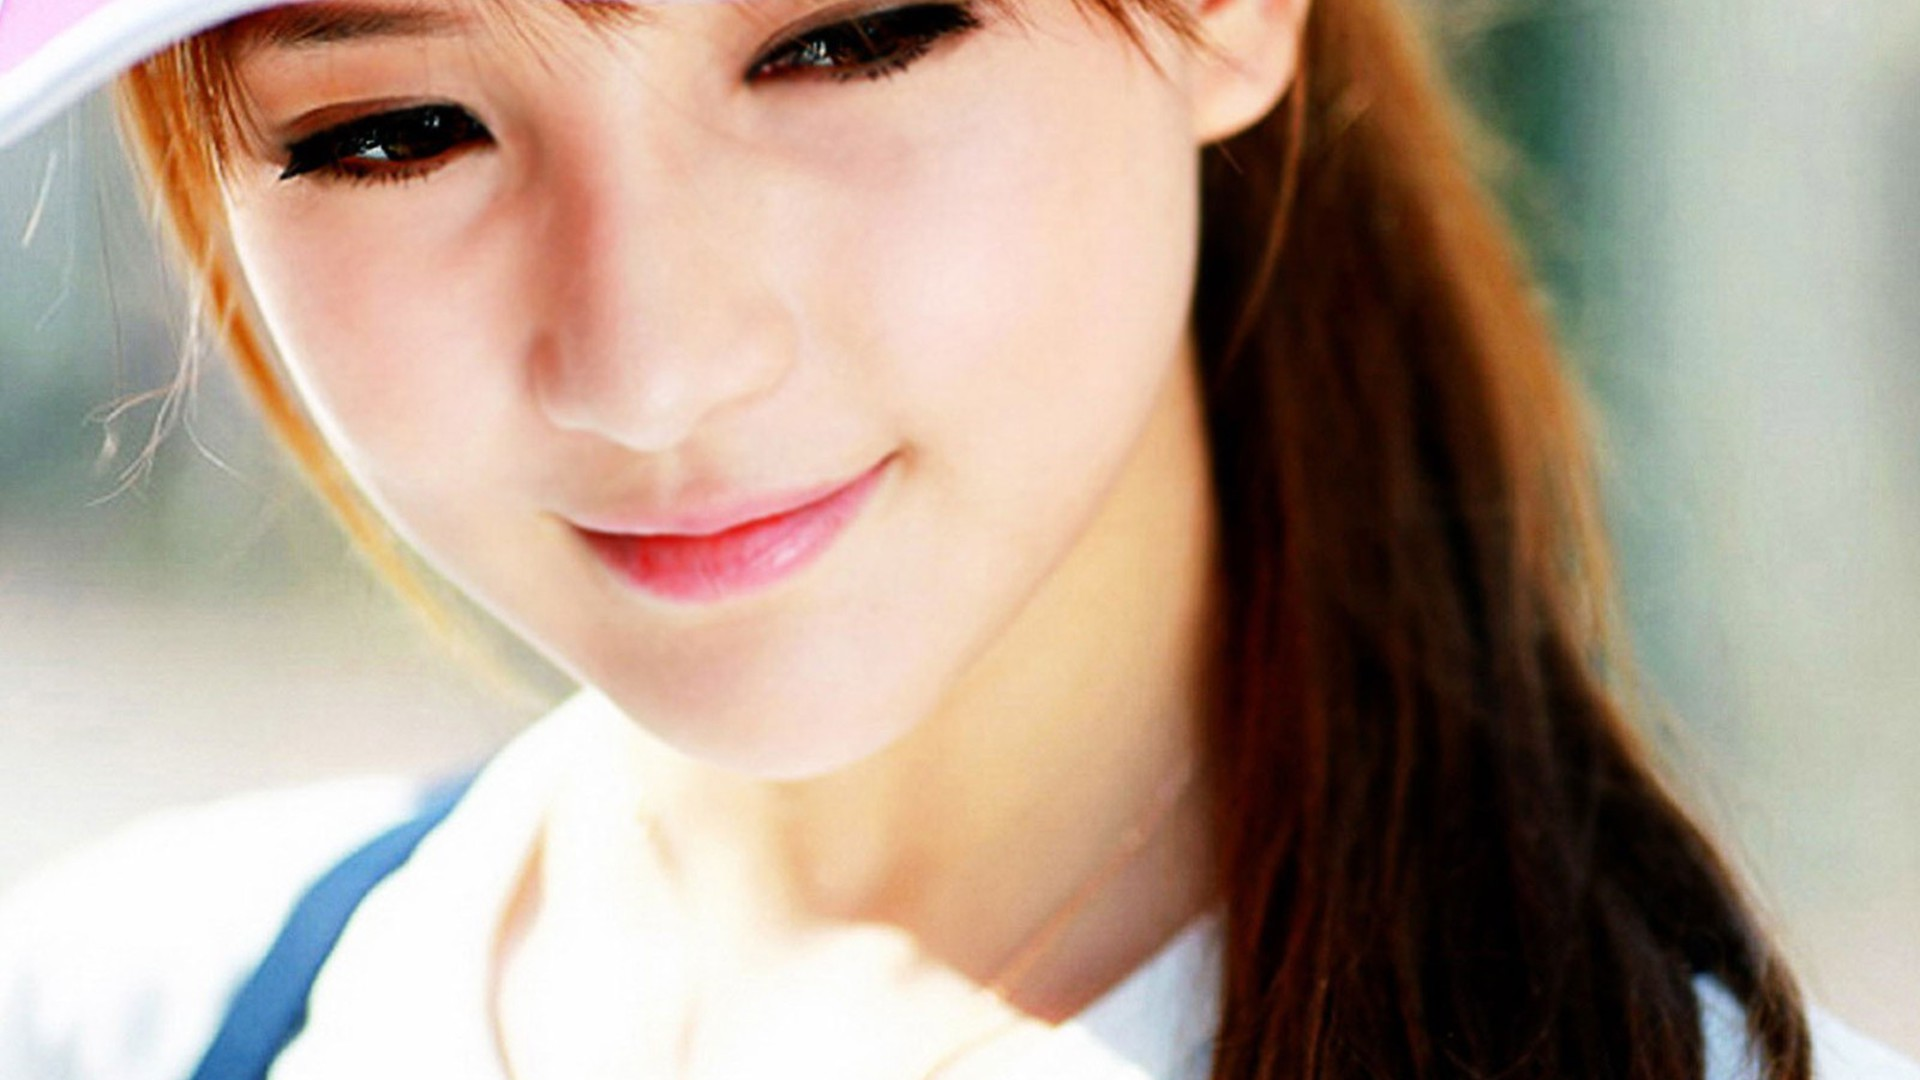 Chinese Asian Girls Wallpaper  Allwallpaperin 14782 -9460